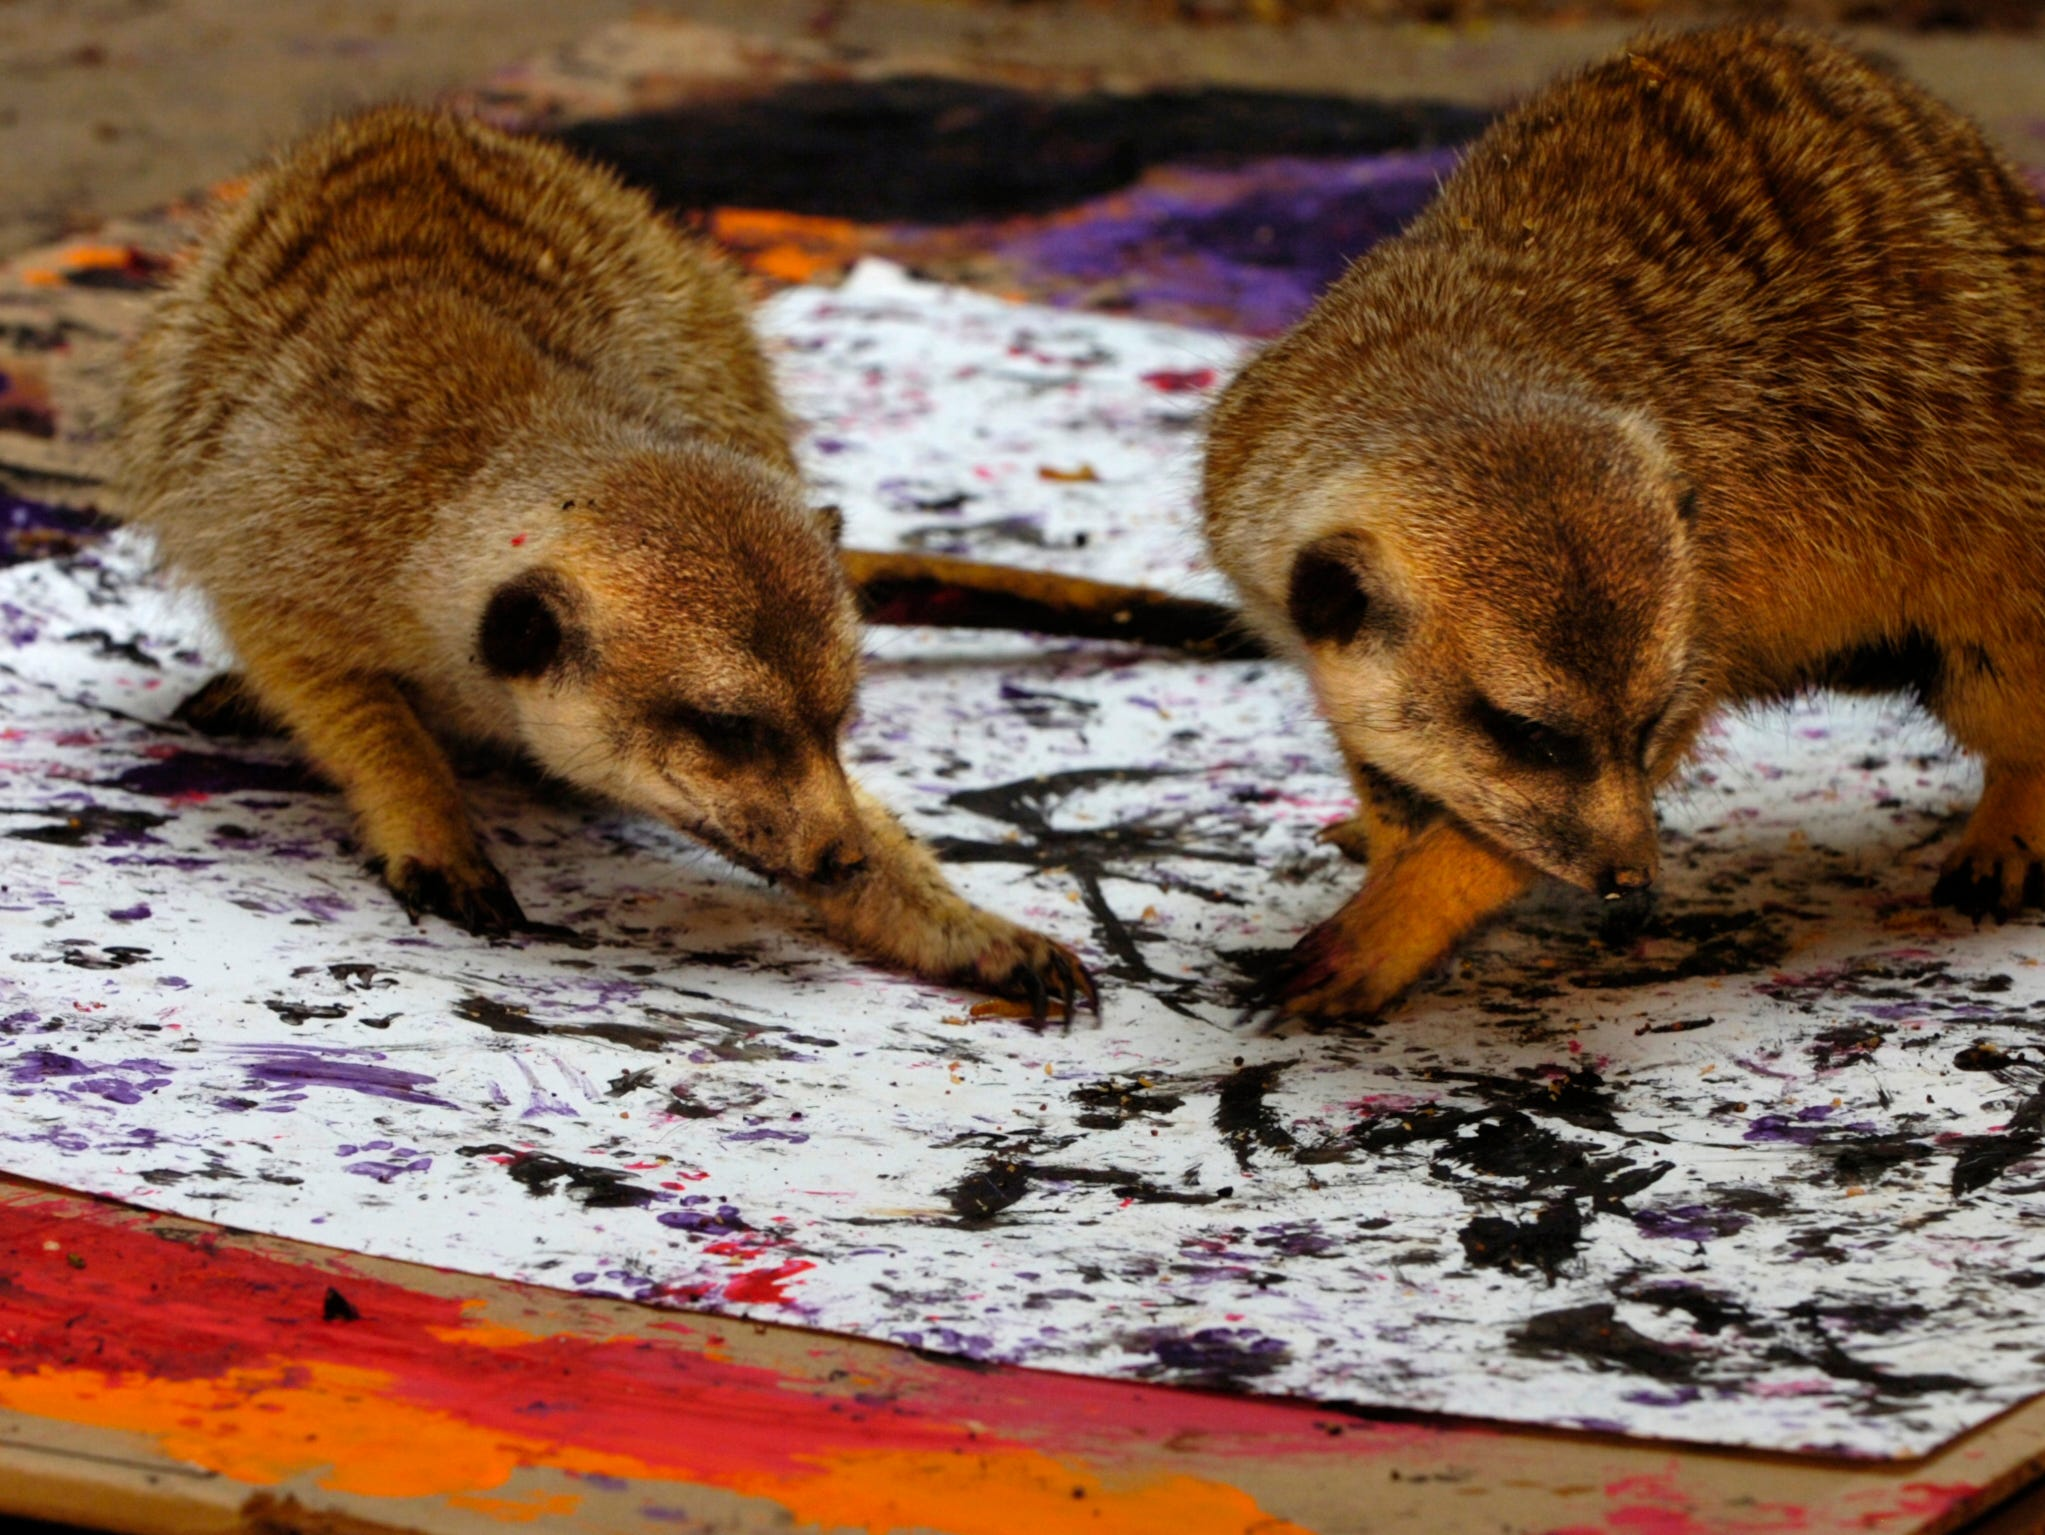 A pair of meerkats at the Knoxville Zoo scratch around for mealworms Wednesday with painted paws on a paper canvas as they create works of art.